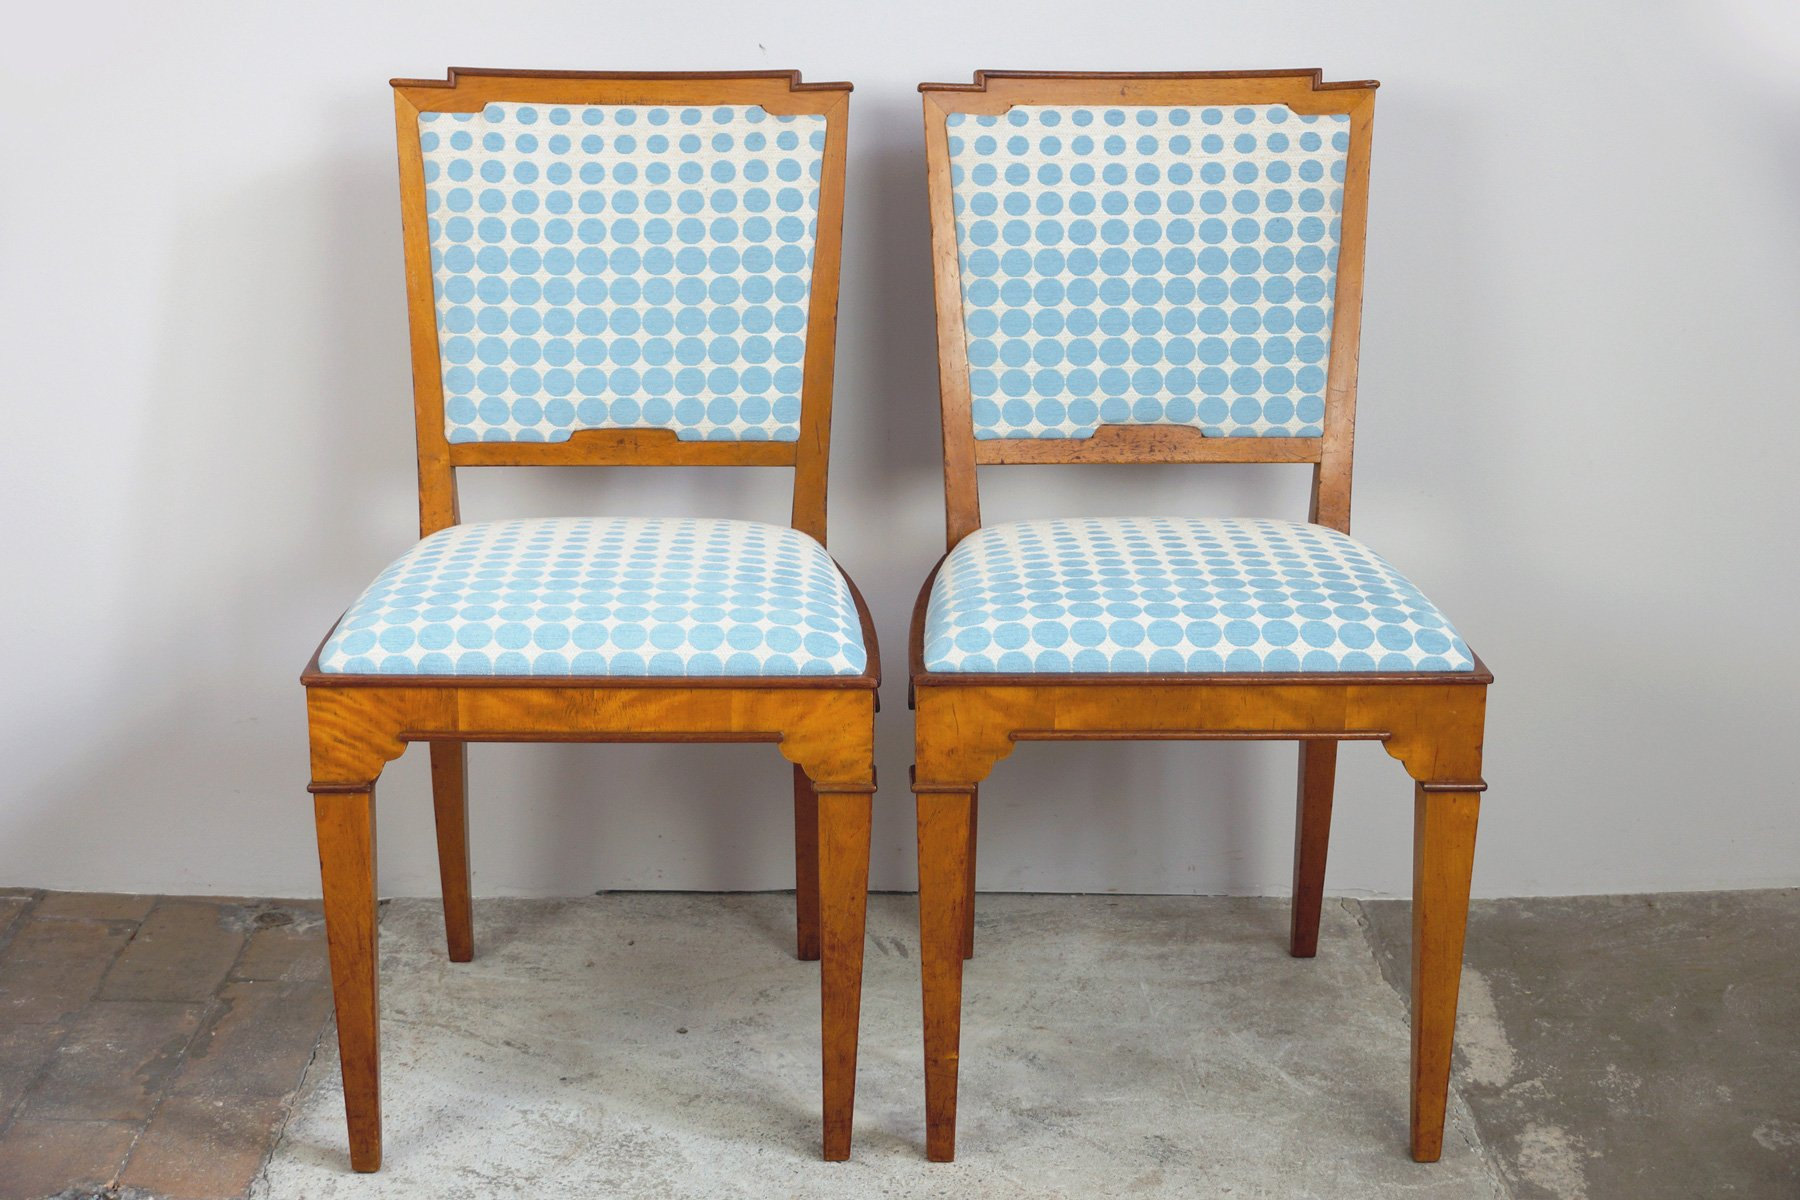 Vintage dining room chairs 1920s set of 2 for sale at pamono for Vintage dining room